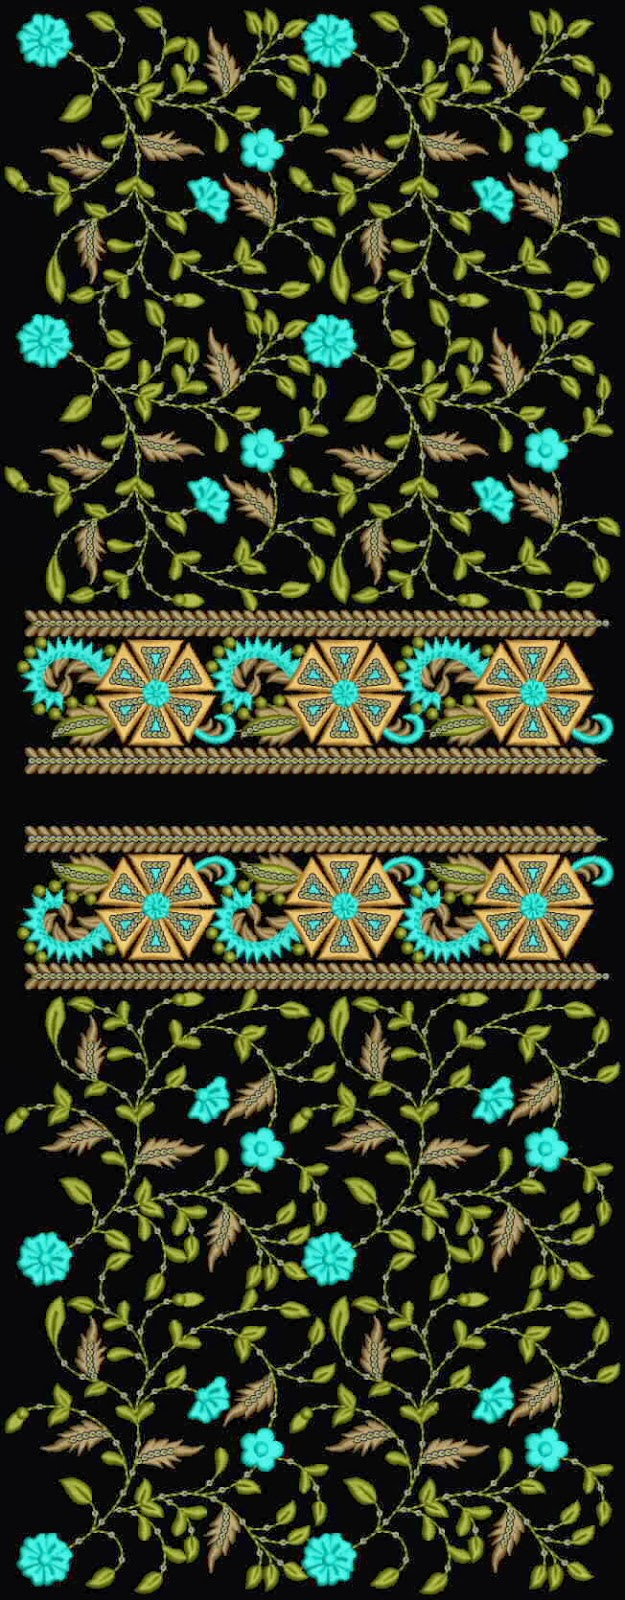 Free Emb Embroidery Designs Cotton Fabric